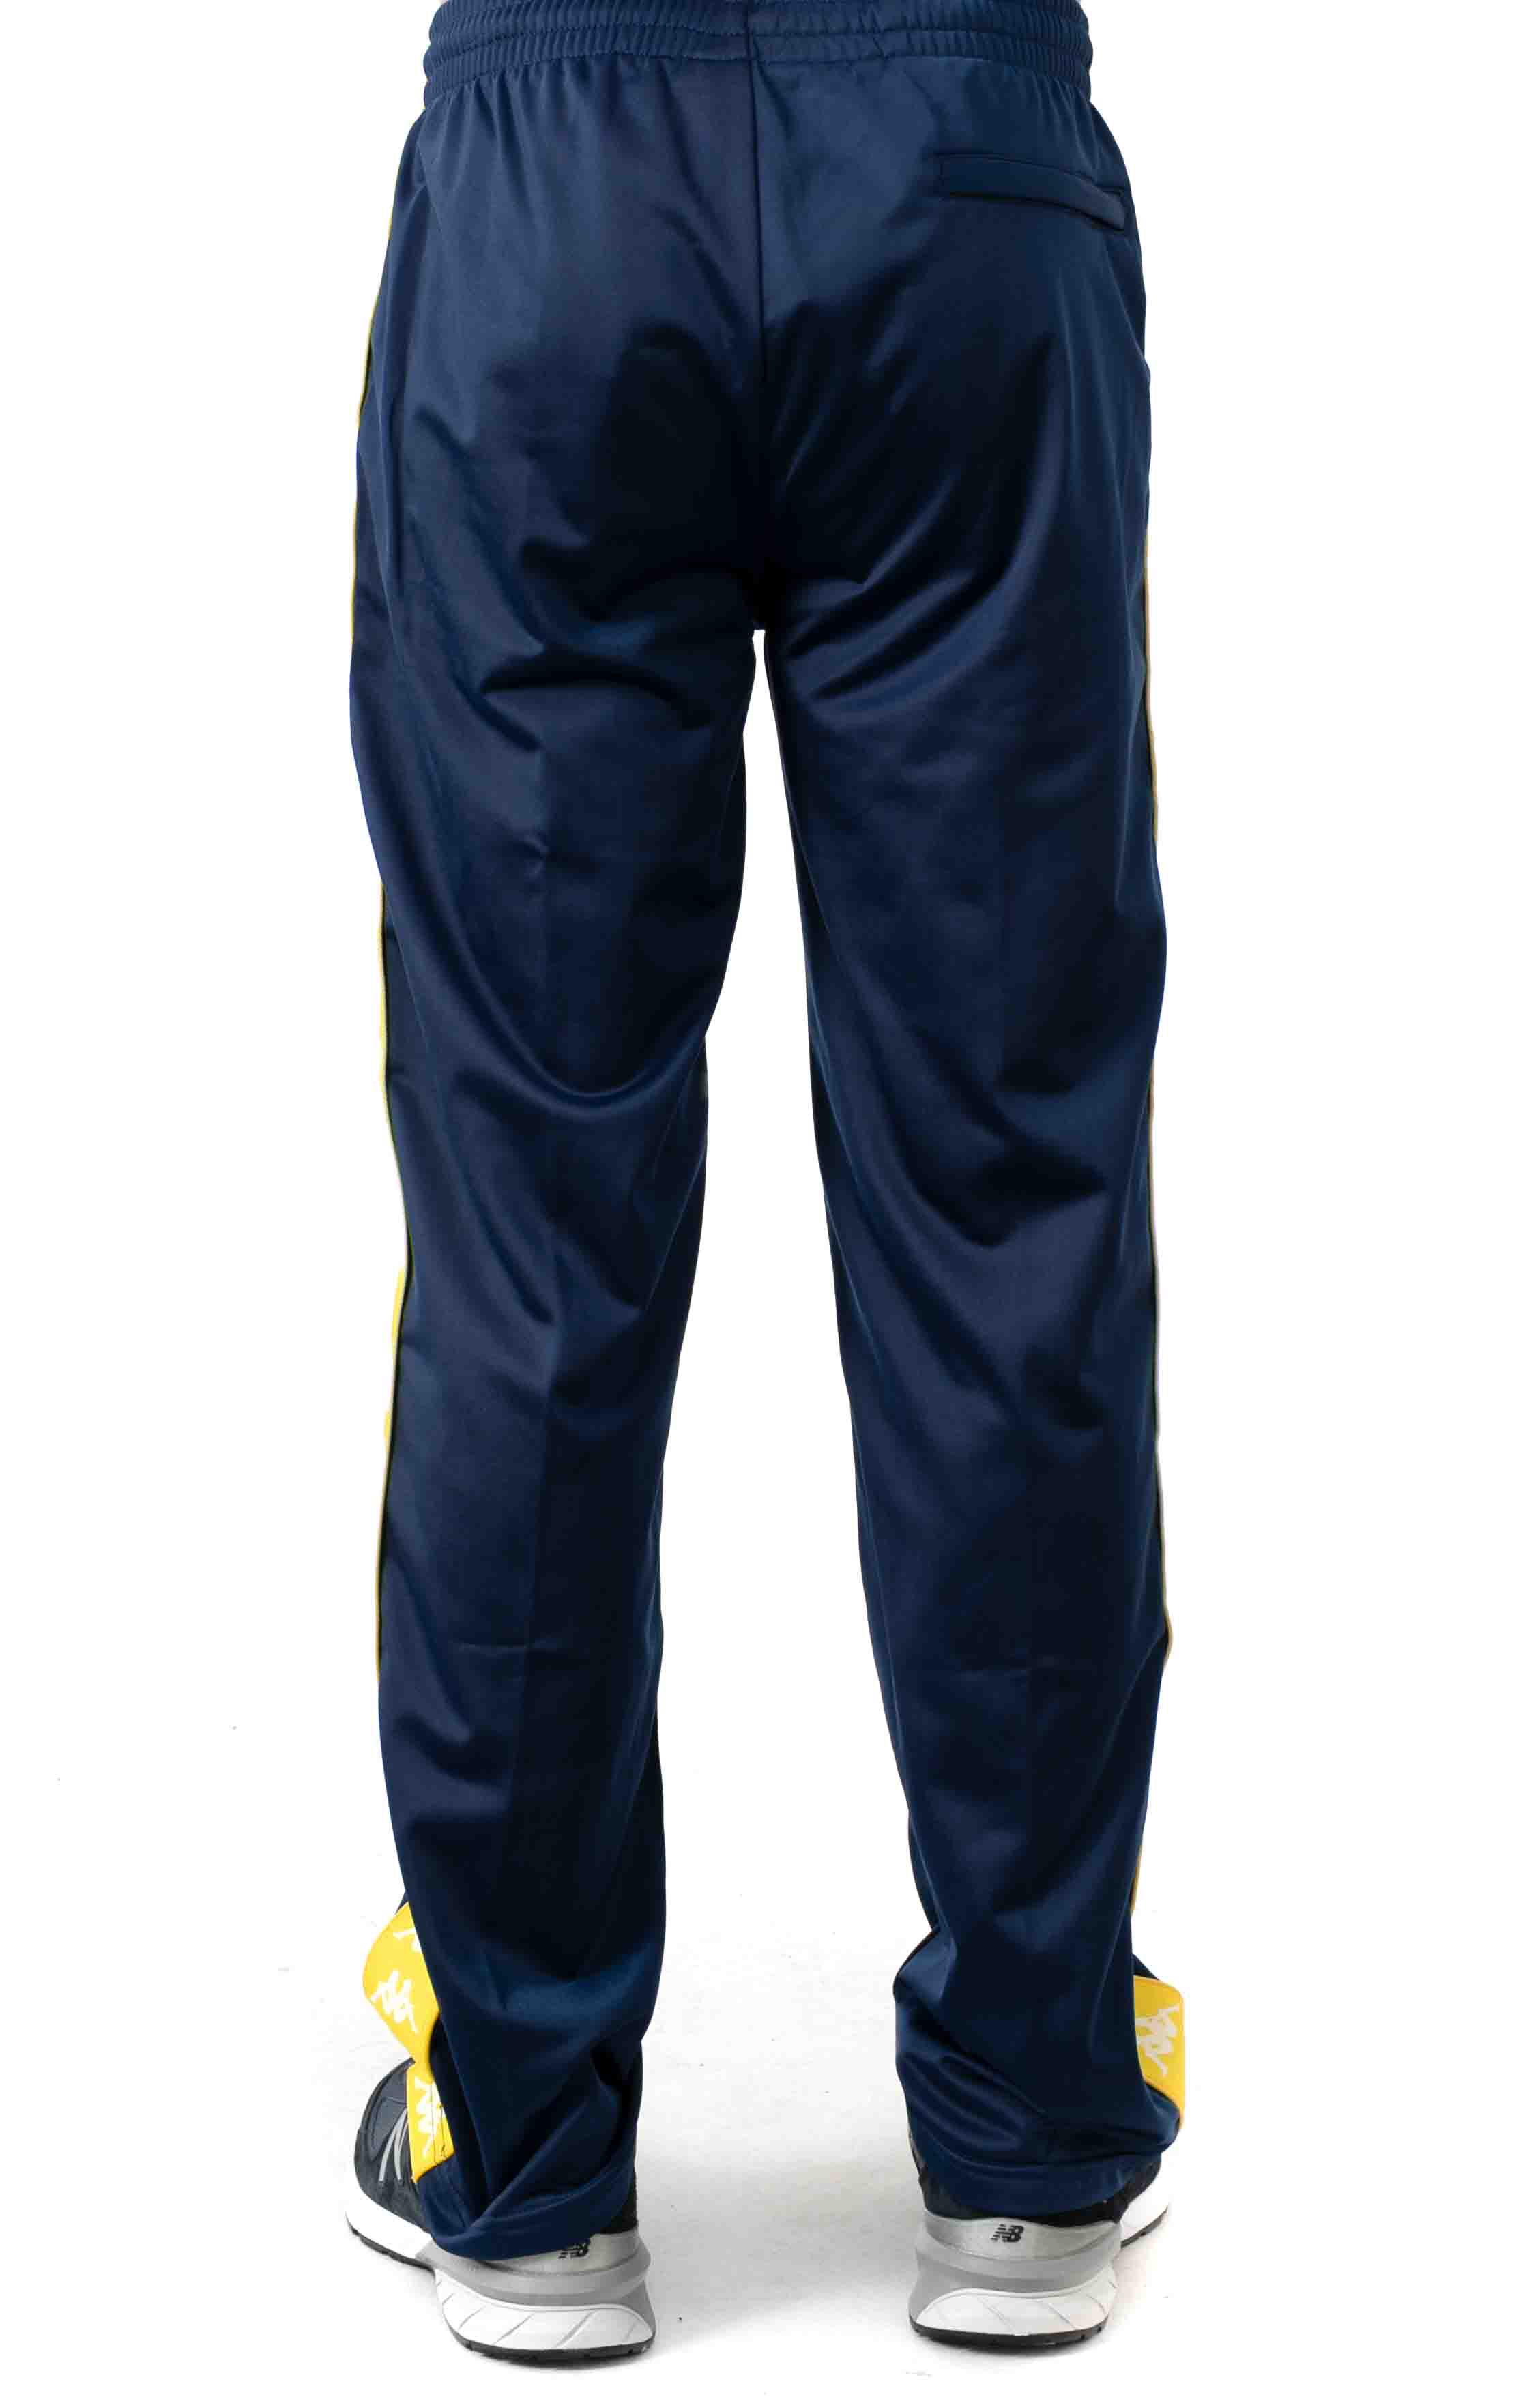 222 Banda Astoriazz Trackpant - Blue Mid/Yellow 3